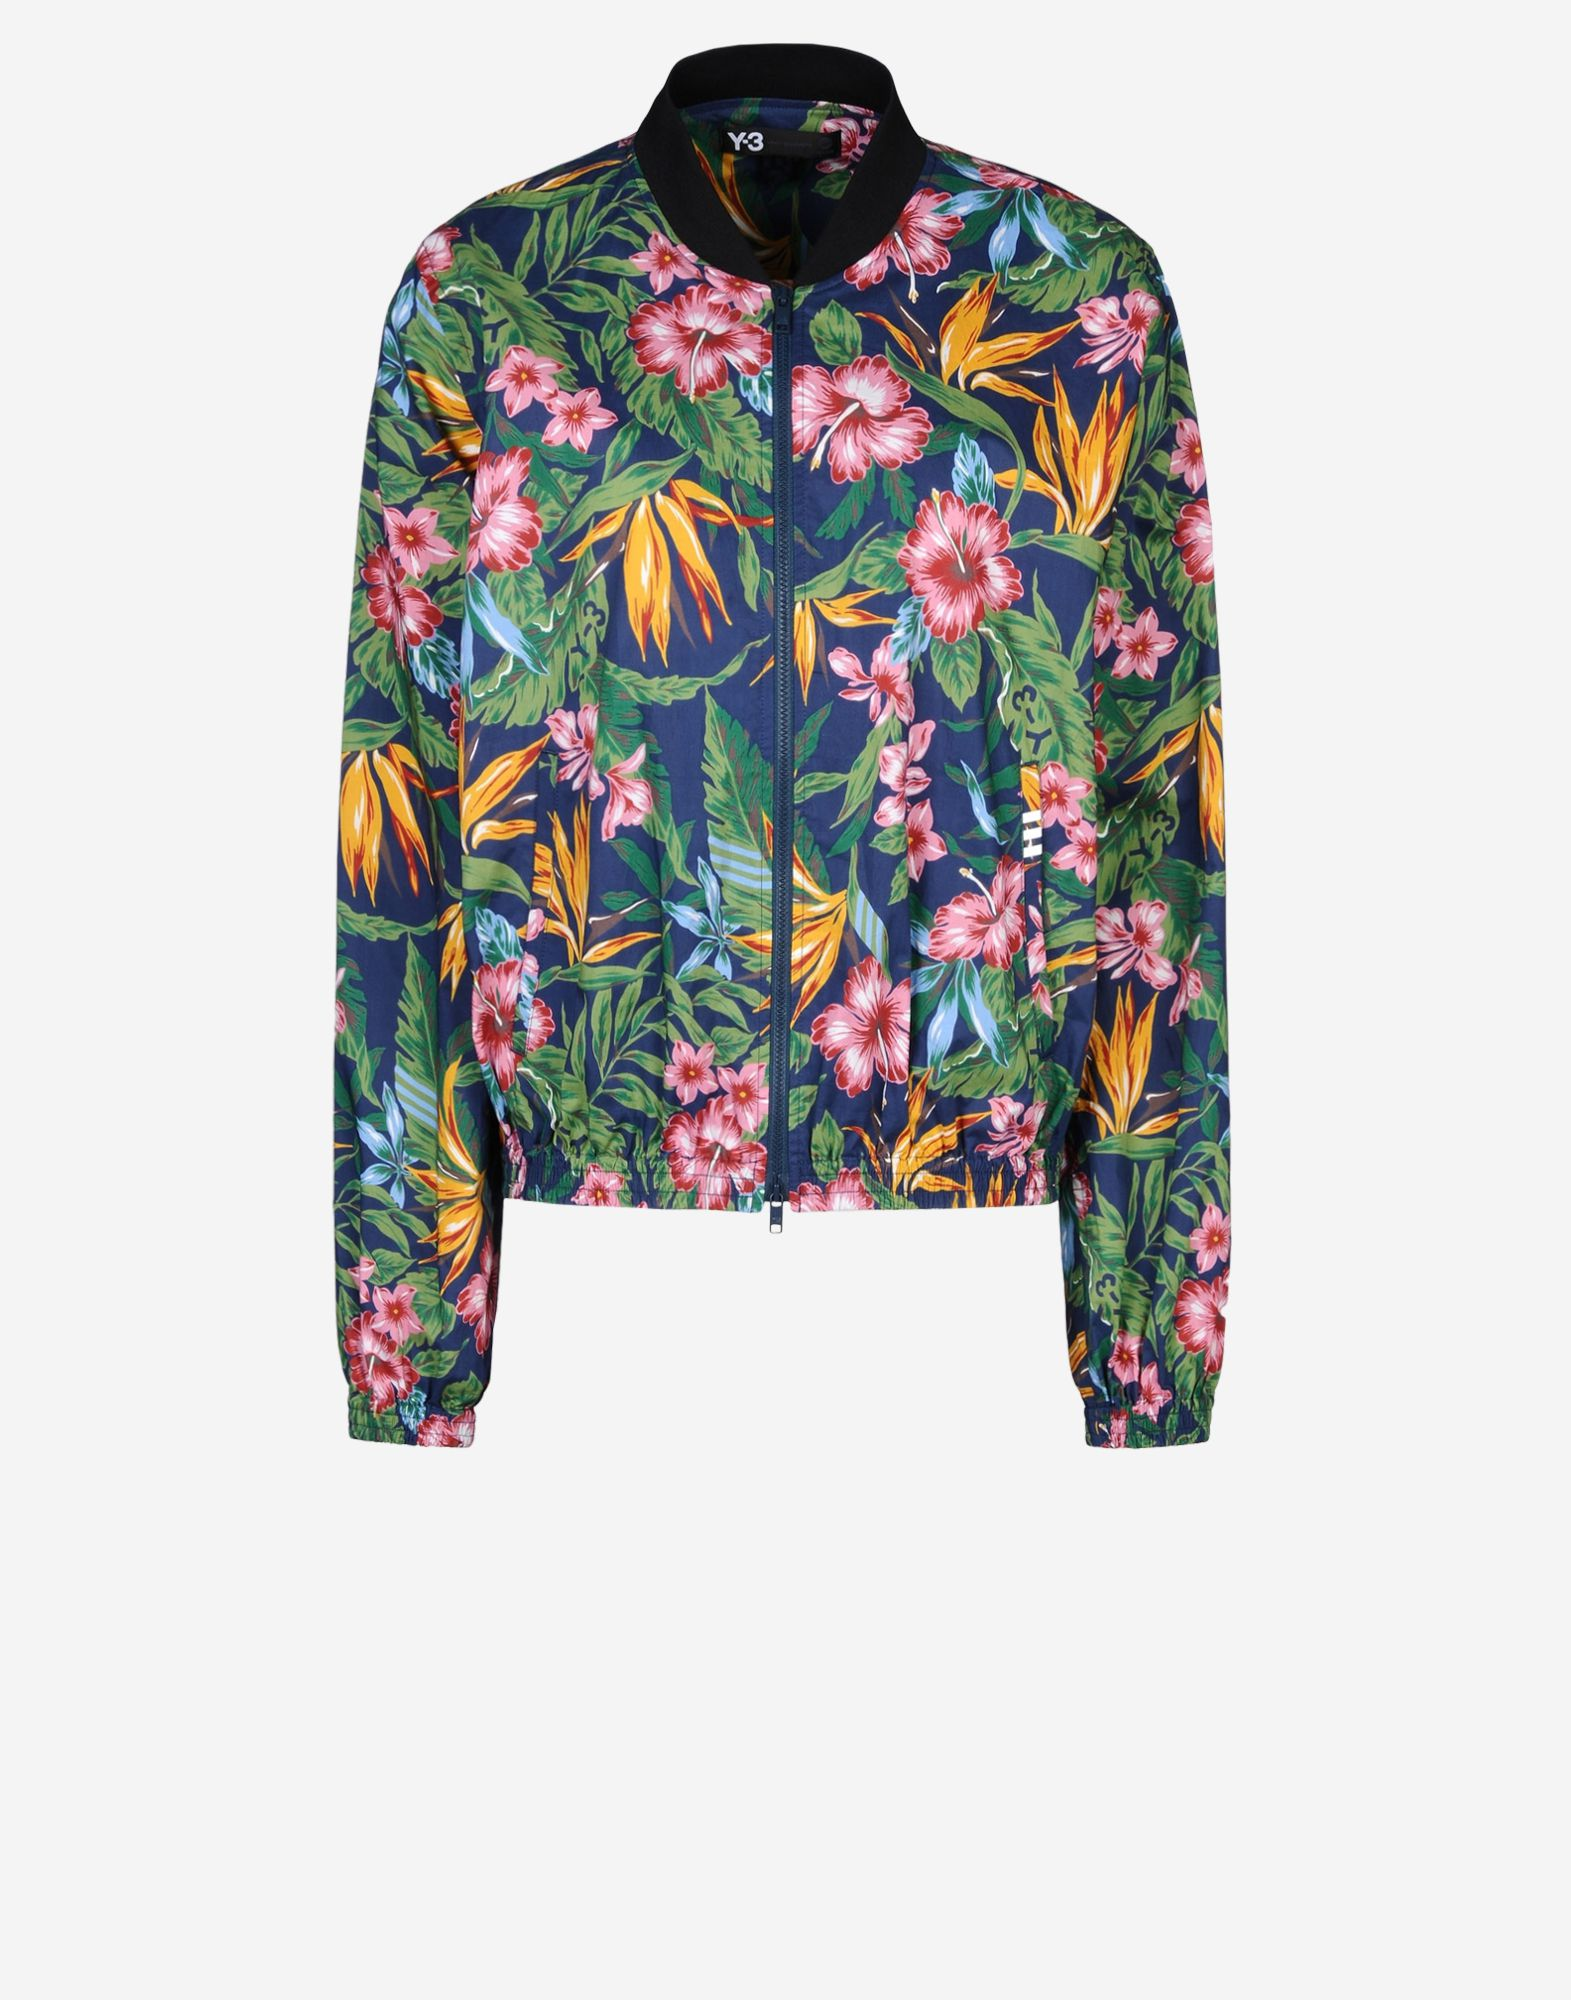 Y 3 Light Bomber Jacket for Women | Adidas Y-3 Official Store